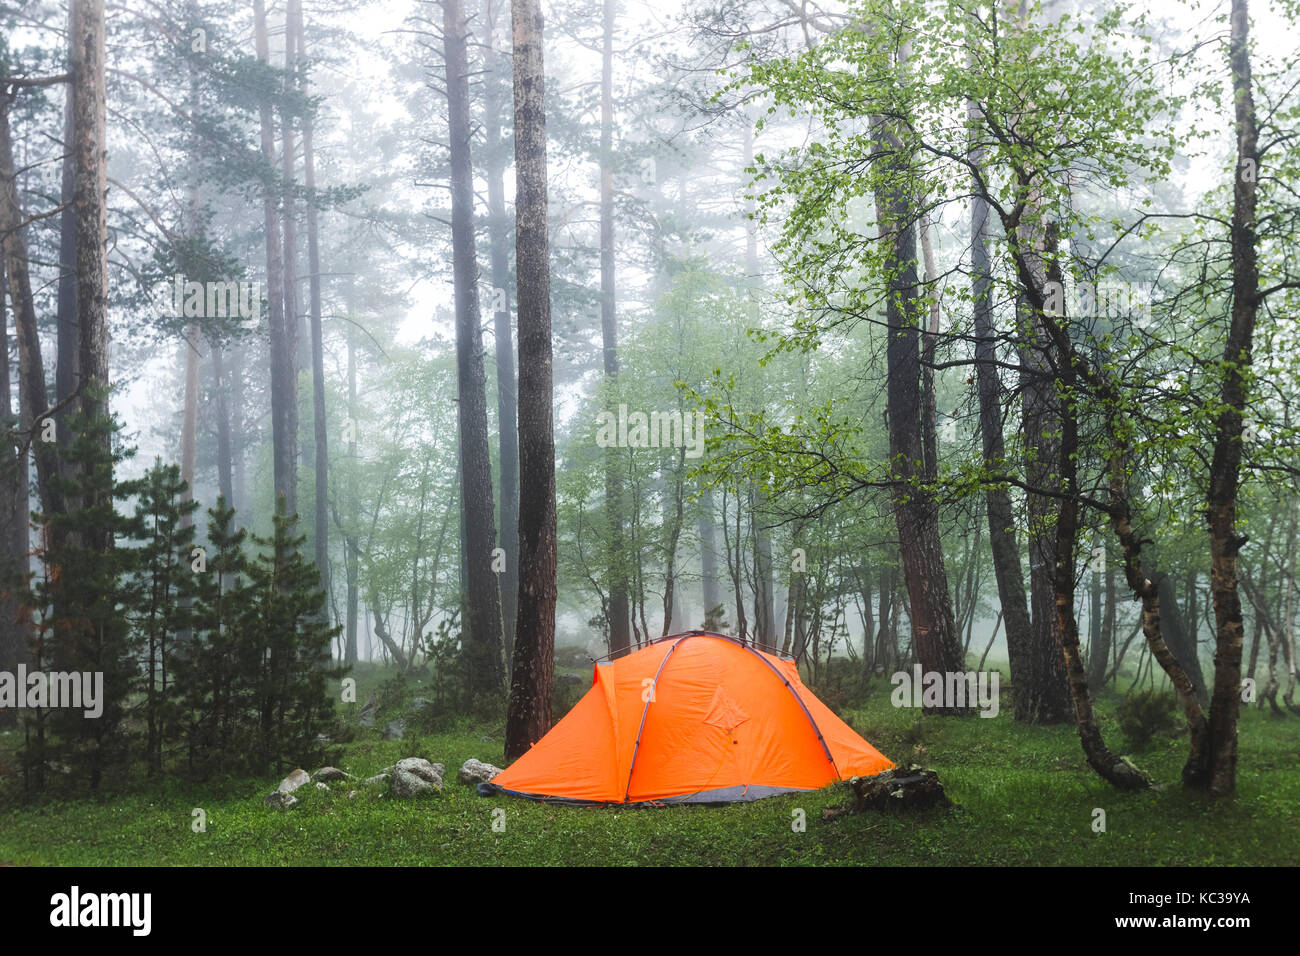 Orange lightweight tent in foggy forest. Cold and wet misty weather in hike, overnight stay - Stock Image